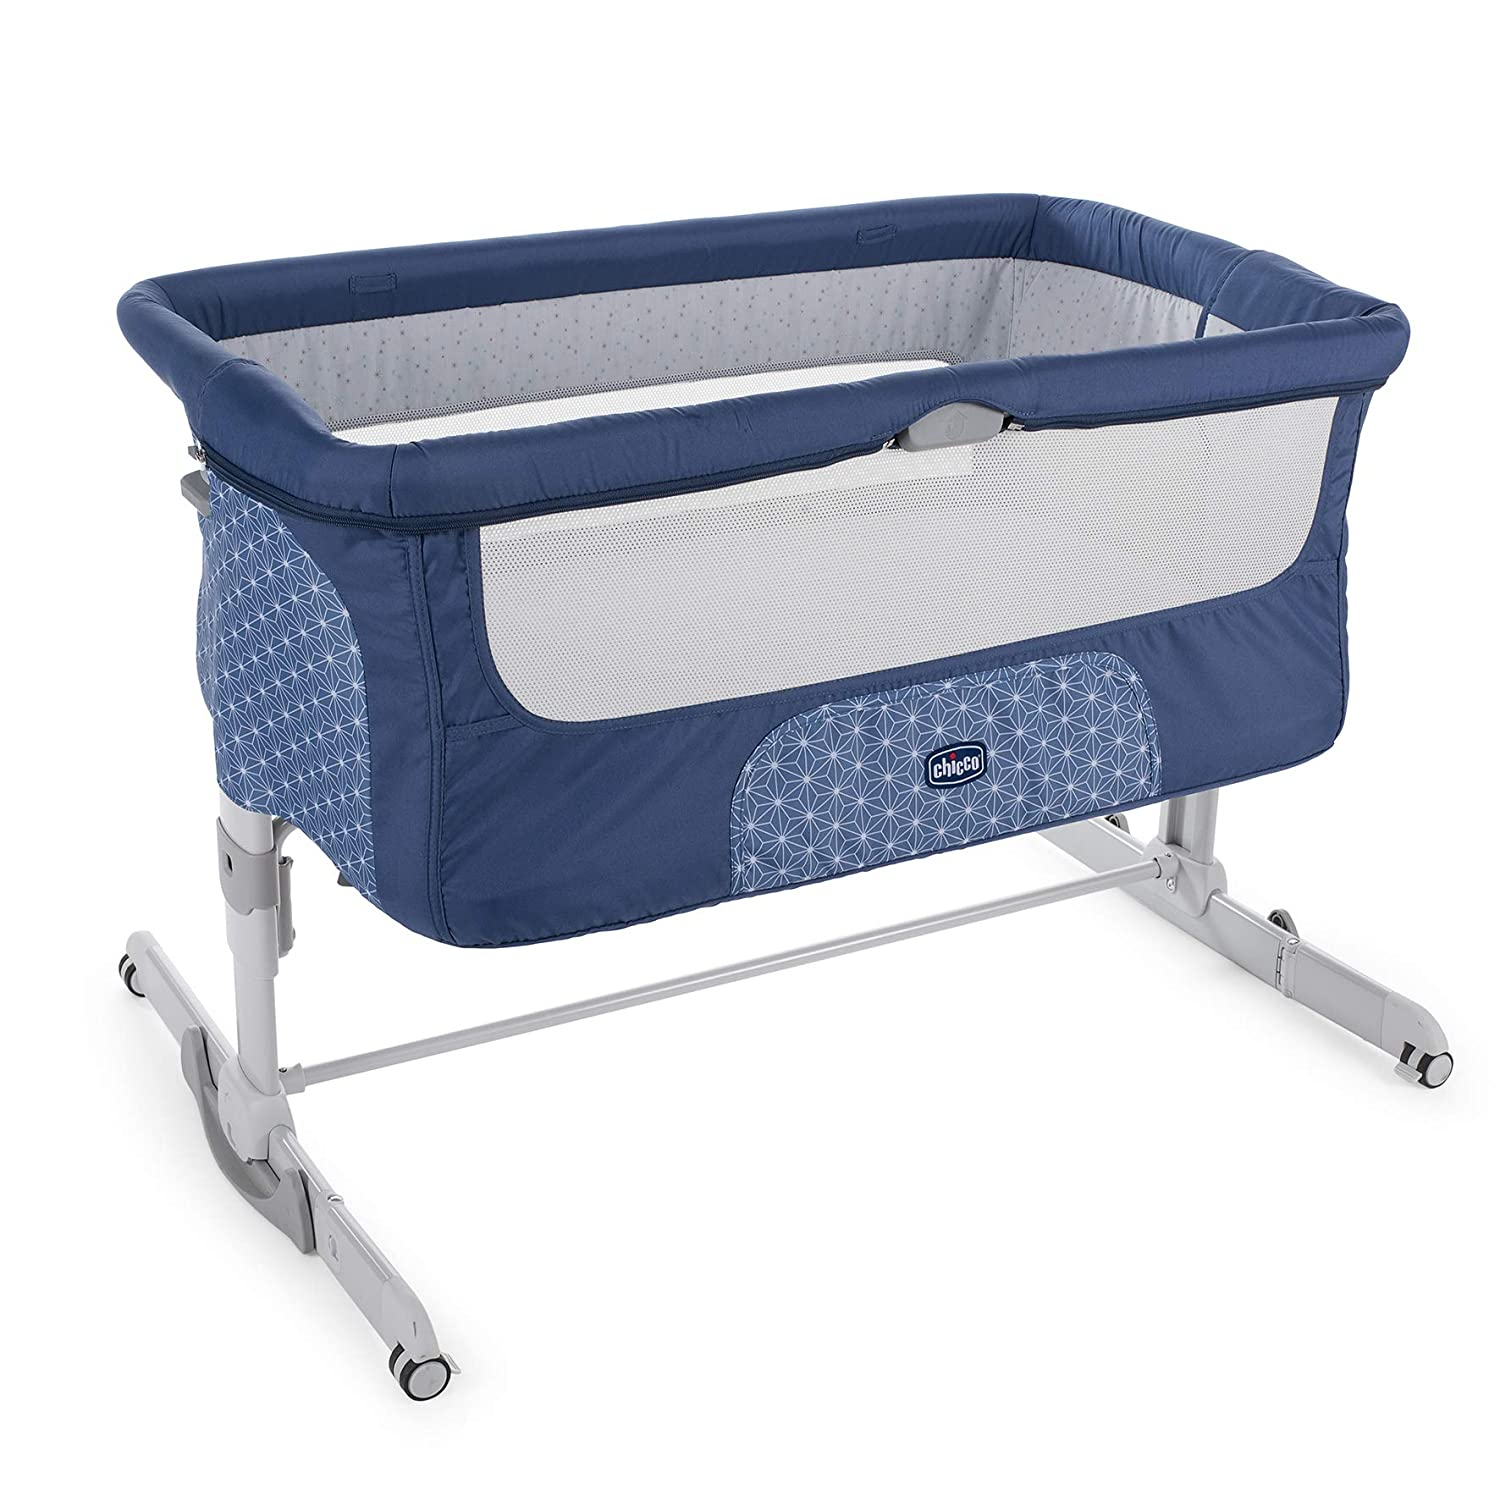 Chicco Next 2 Me Spectrum Side Sleeping Crib Baby Crib NEW FAST DELIVERY 2019